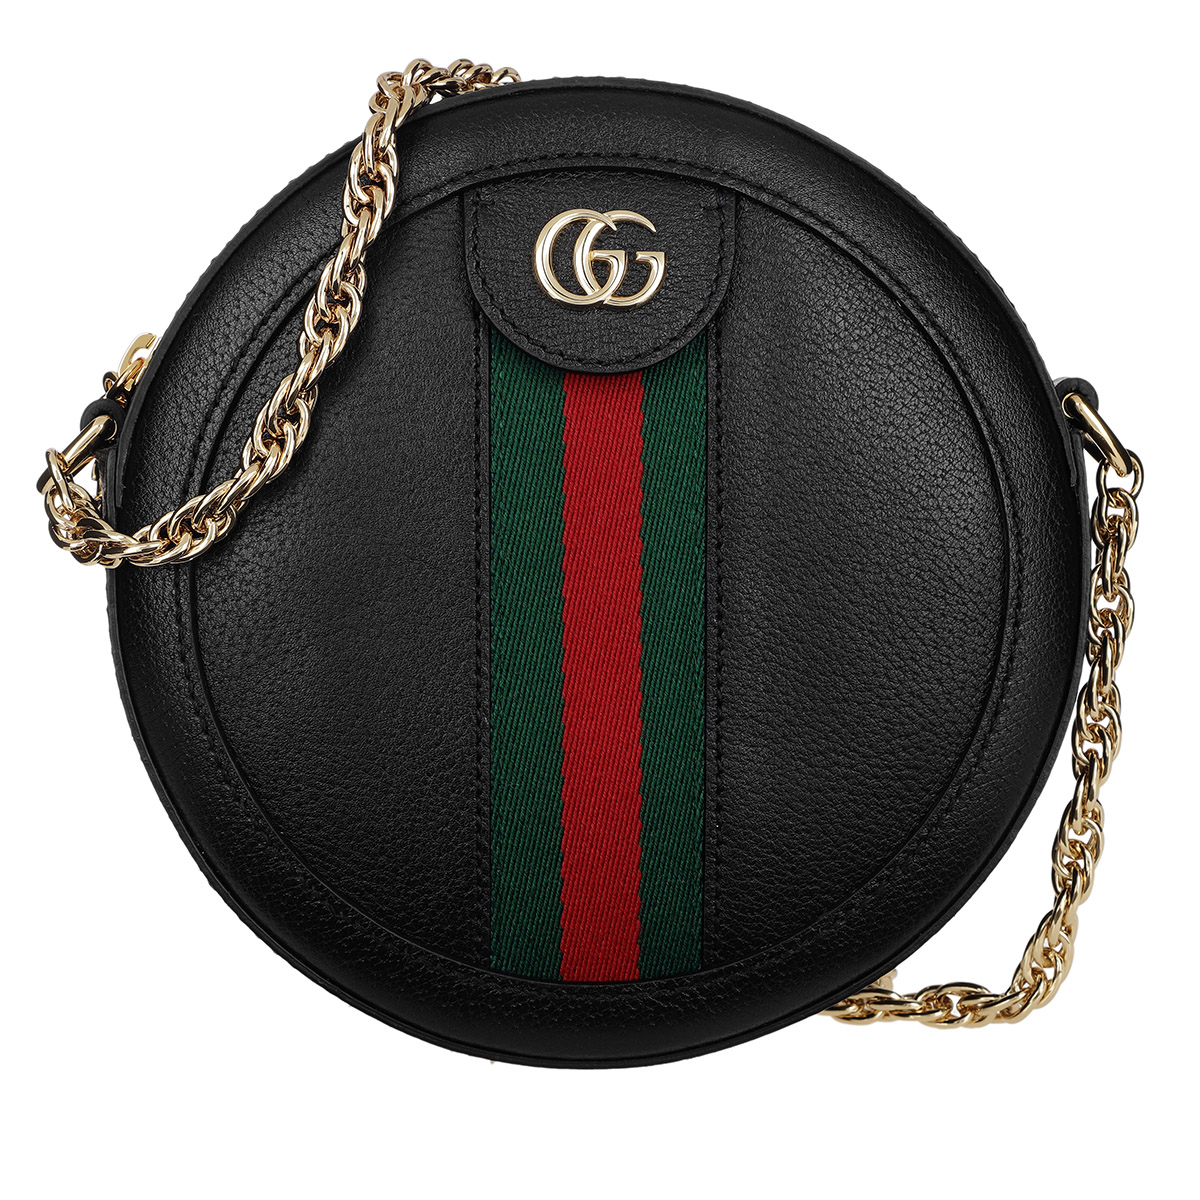 Gucci Umhängetasche - Ophidia Mini Round Shoulder Bag Leather Black - in schwarz - für Damen